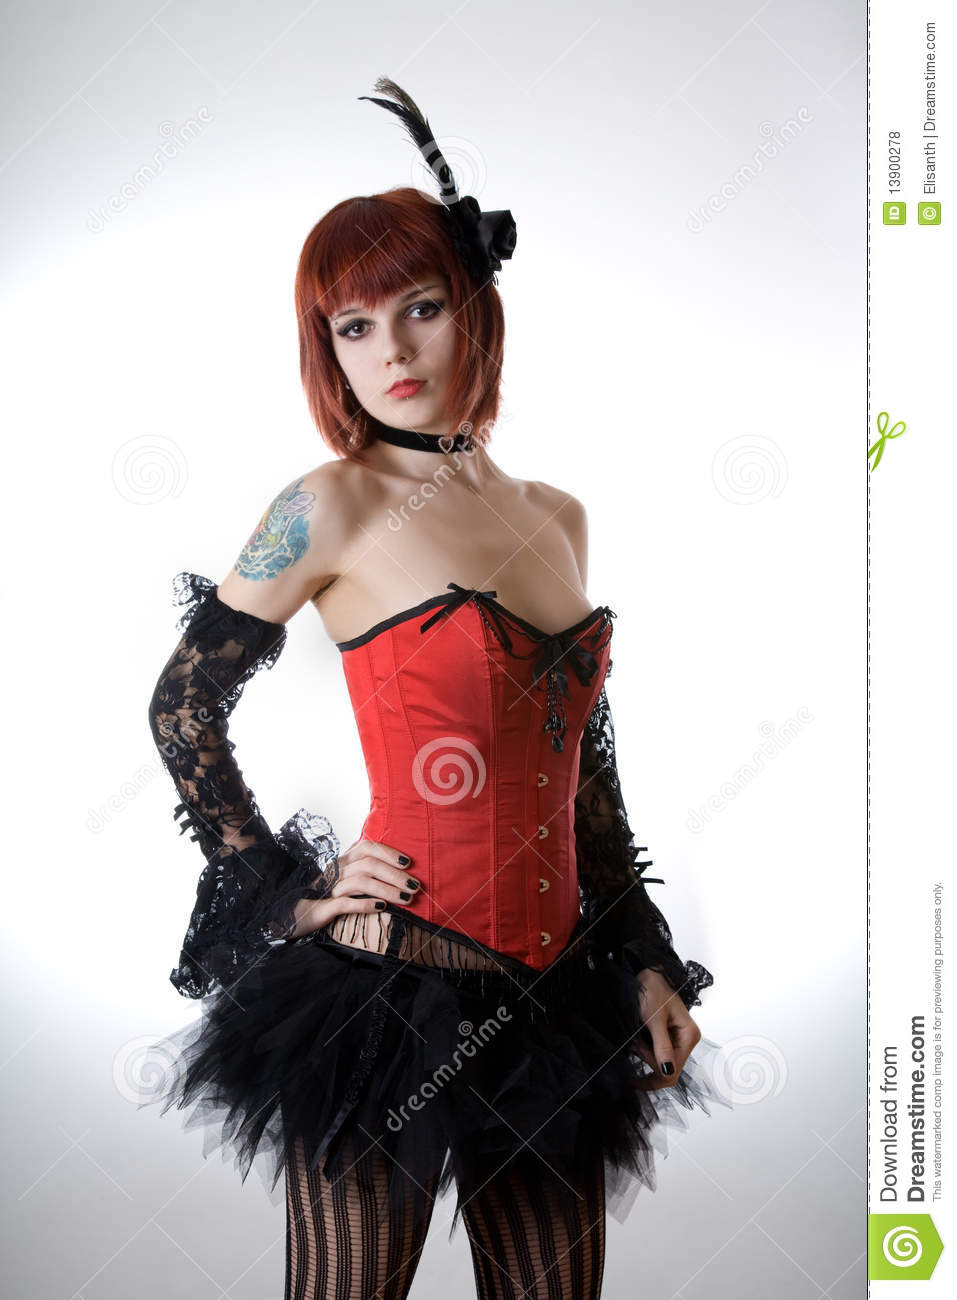 Cabaret girl in red corset